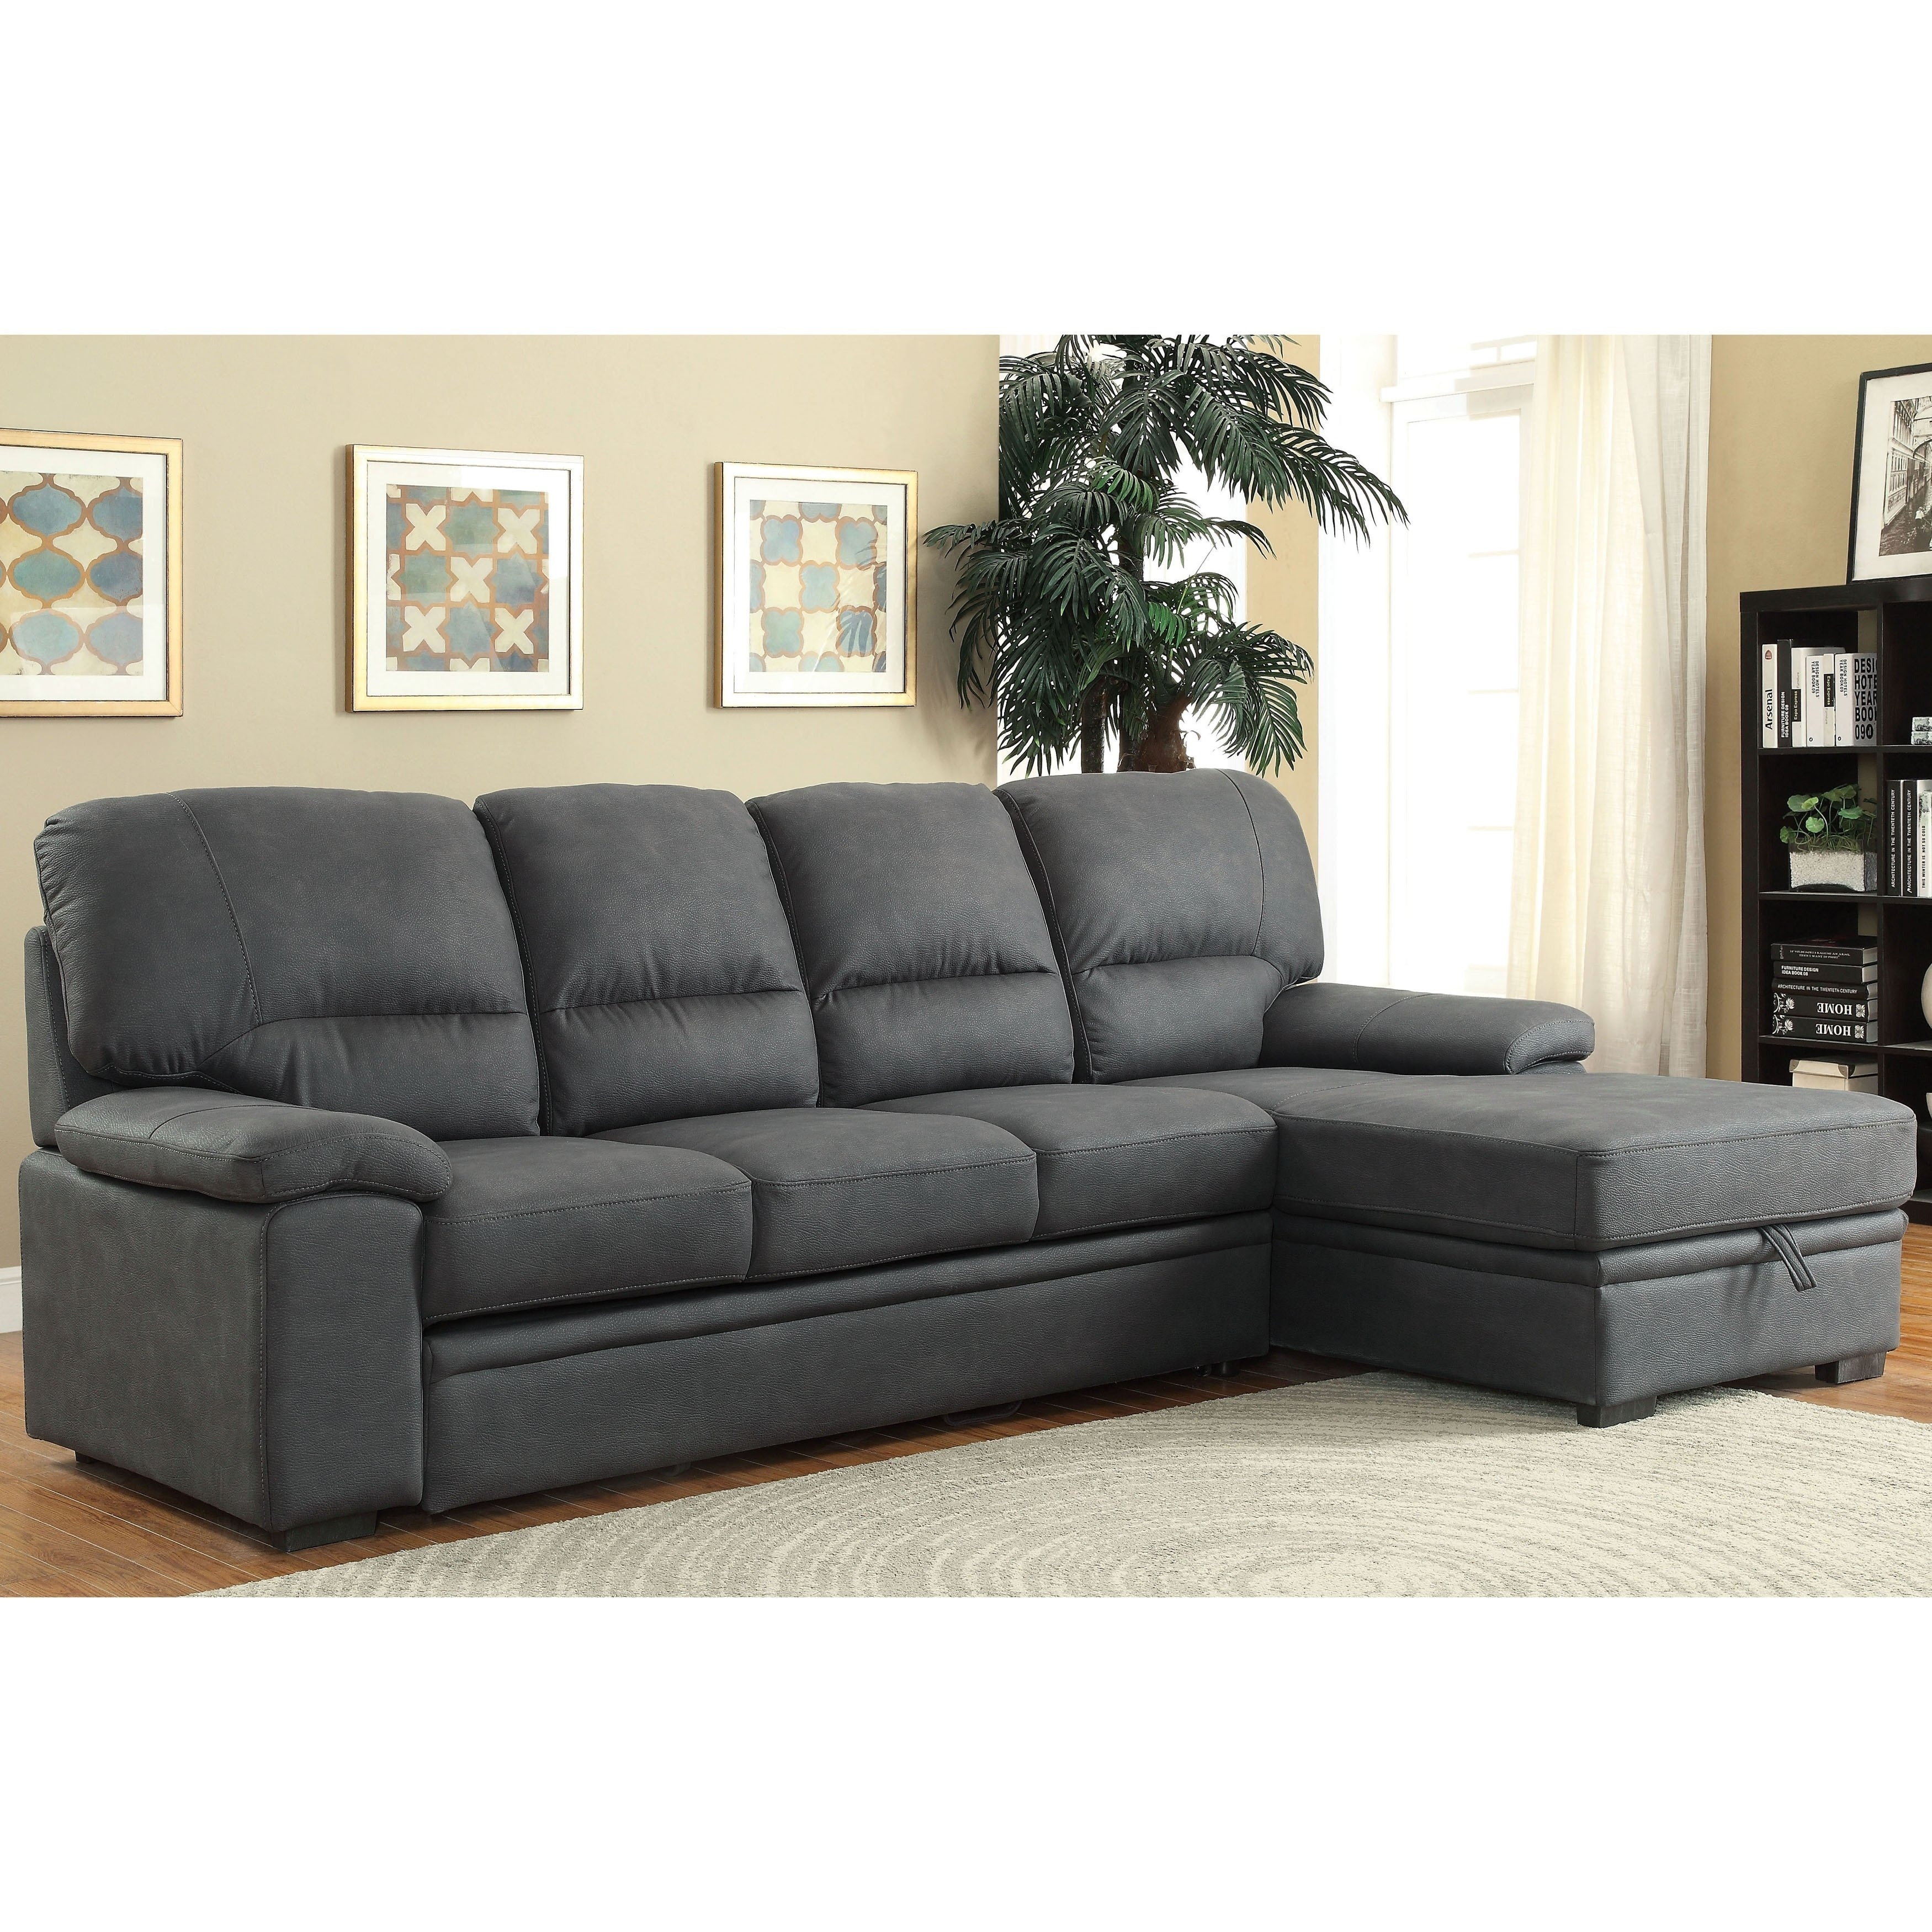 Ordinaire Furniture Of America Delton Contemporary Faux Nubuck Sleeper Sectional